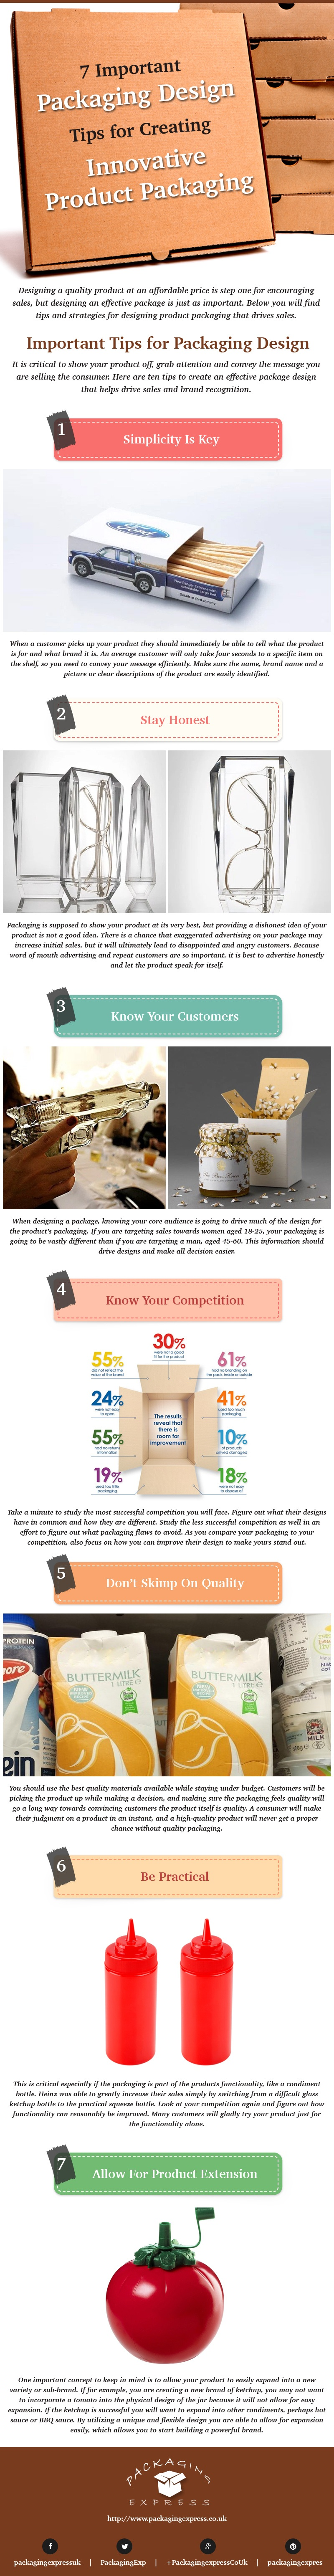 Environmentally Friendly Packaging [Infographic]